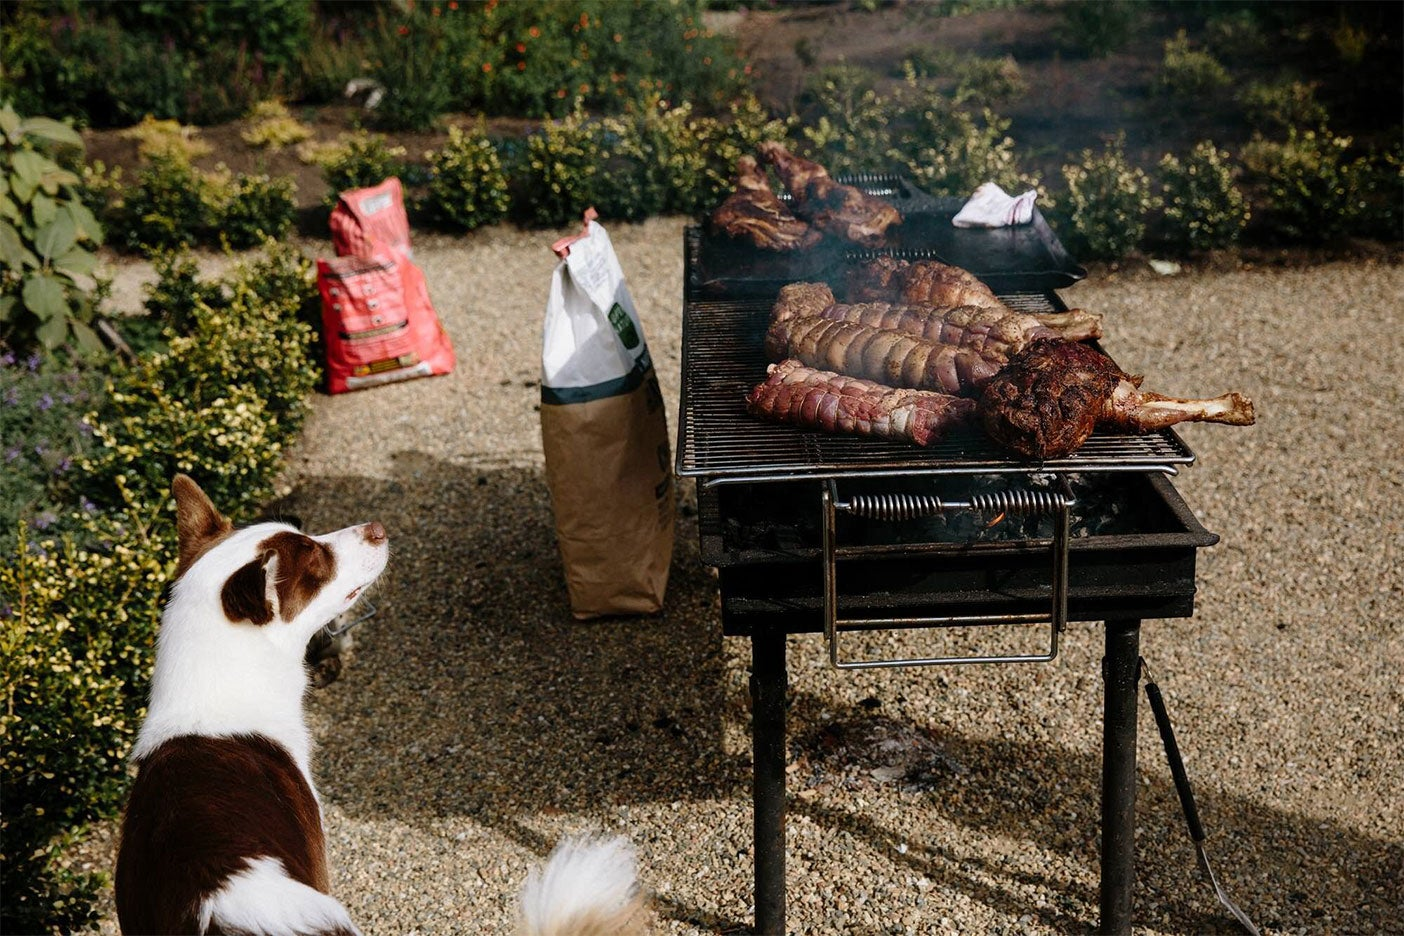 lamb on a grill